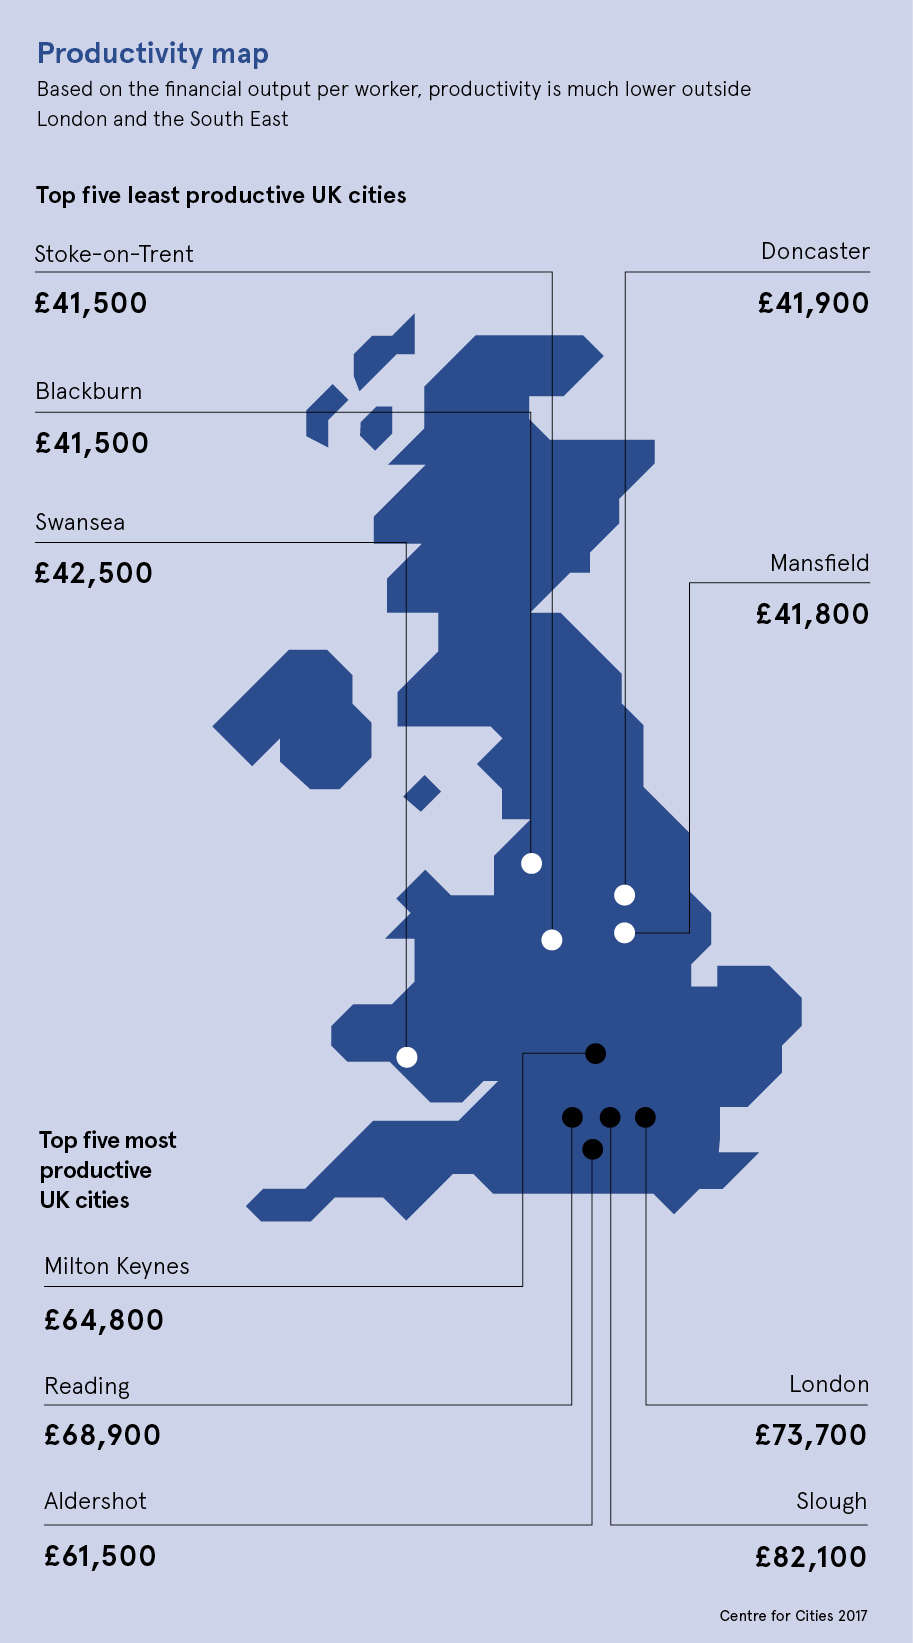 Productivity map of the UK